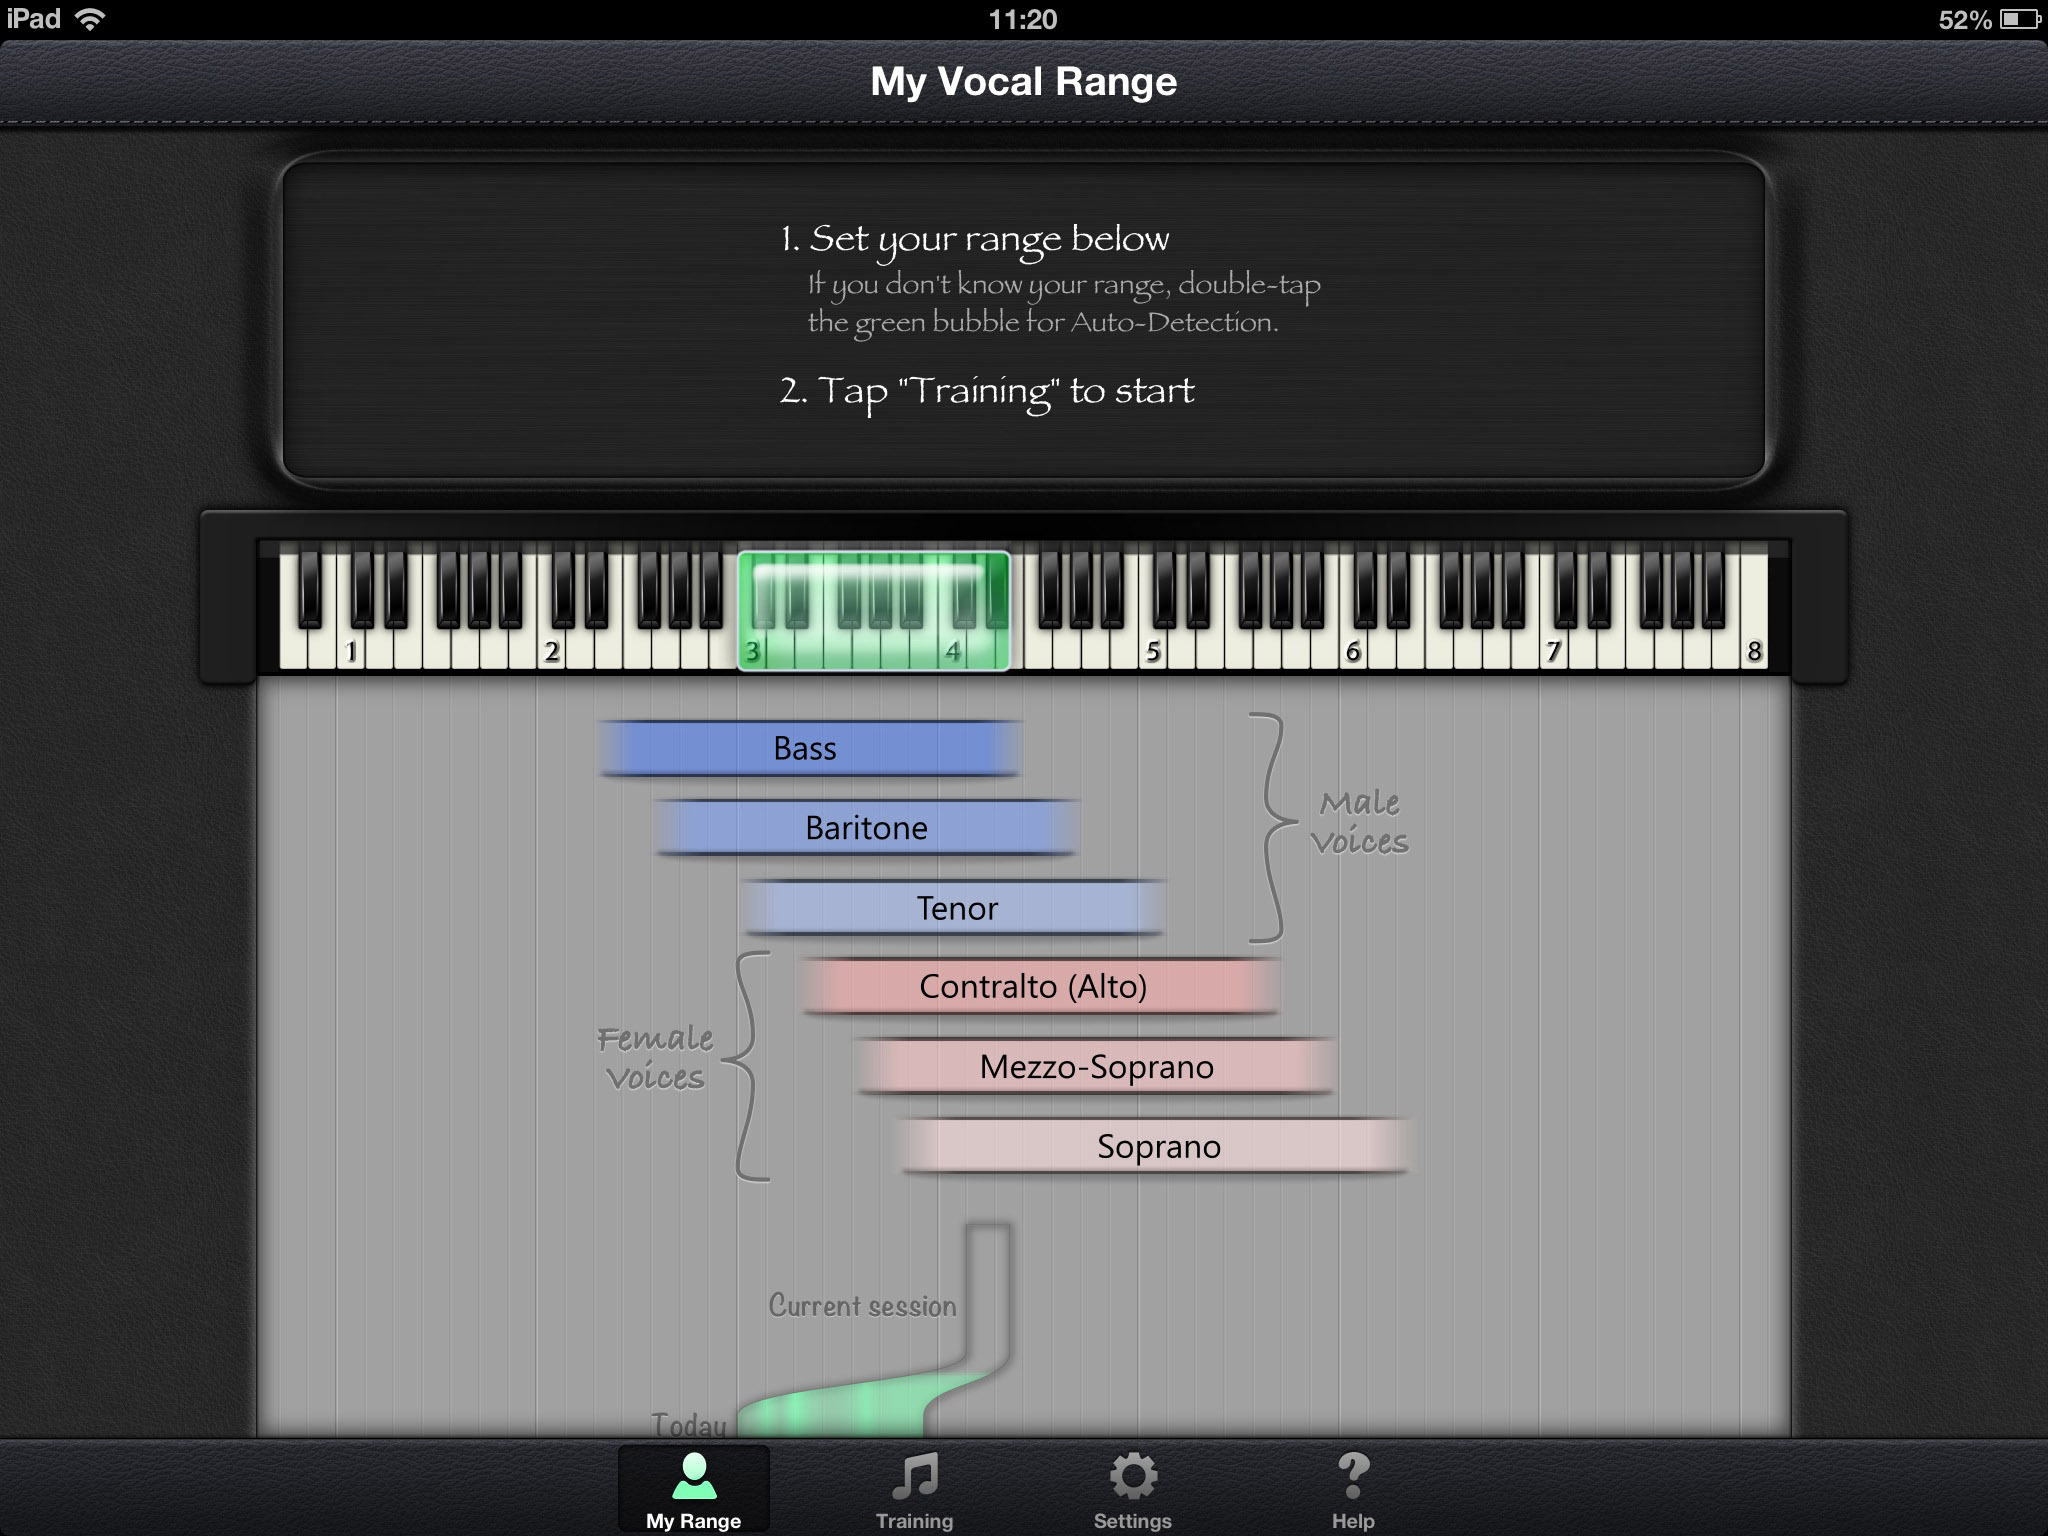 The App Allows You To Specify Your Vocal Range And Tailors The Lessons To  Suit